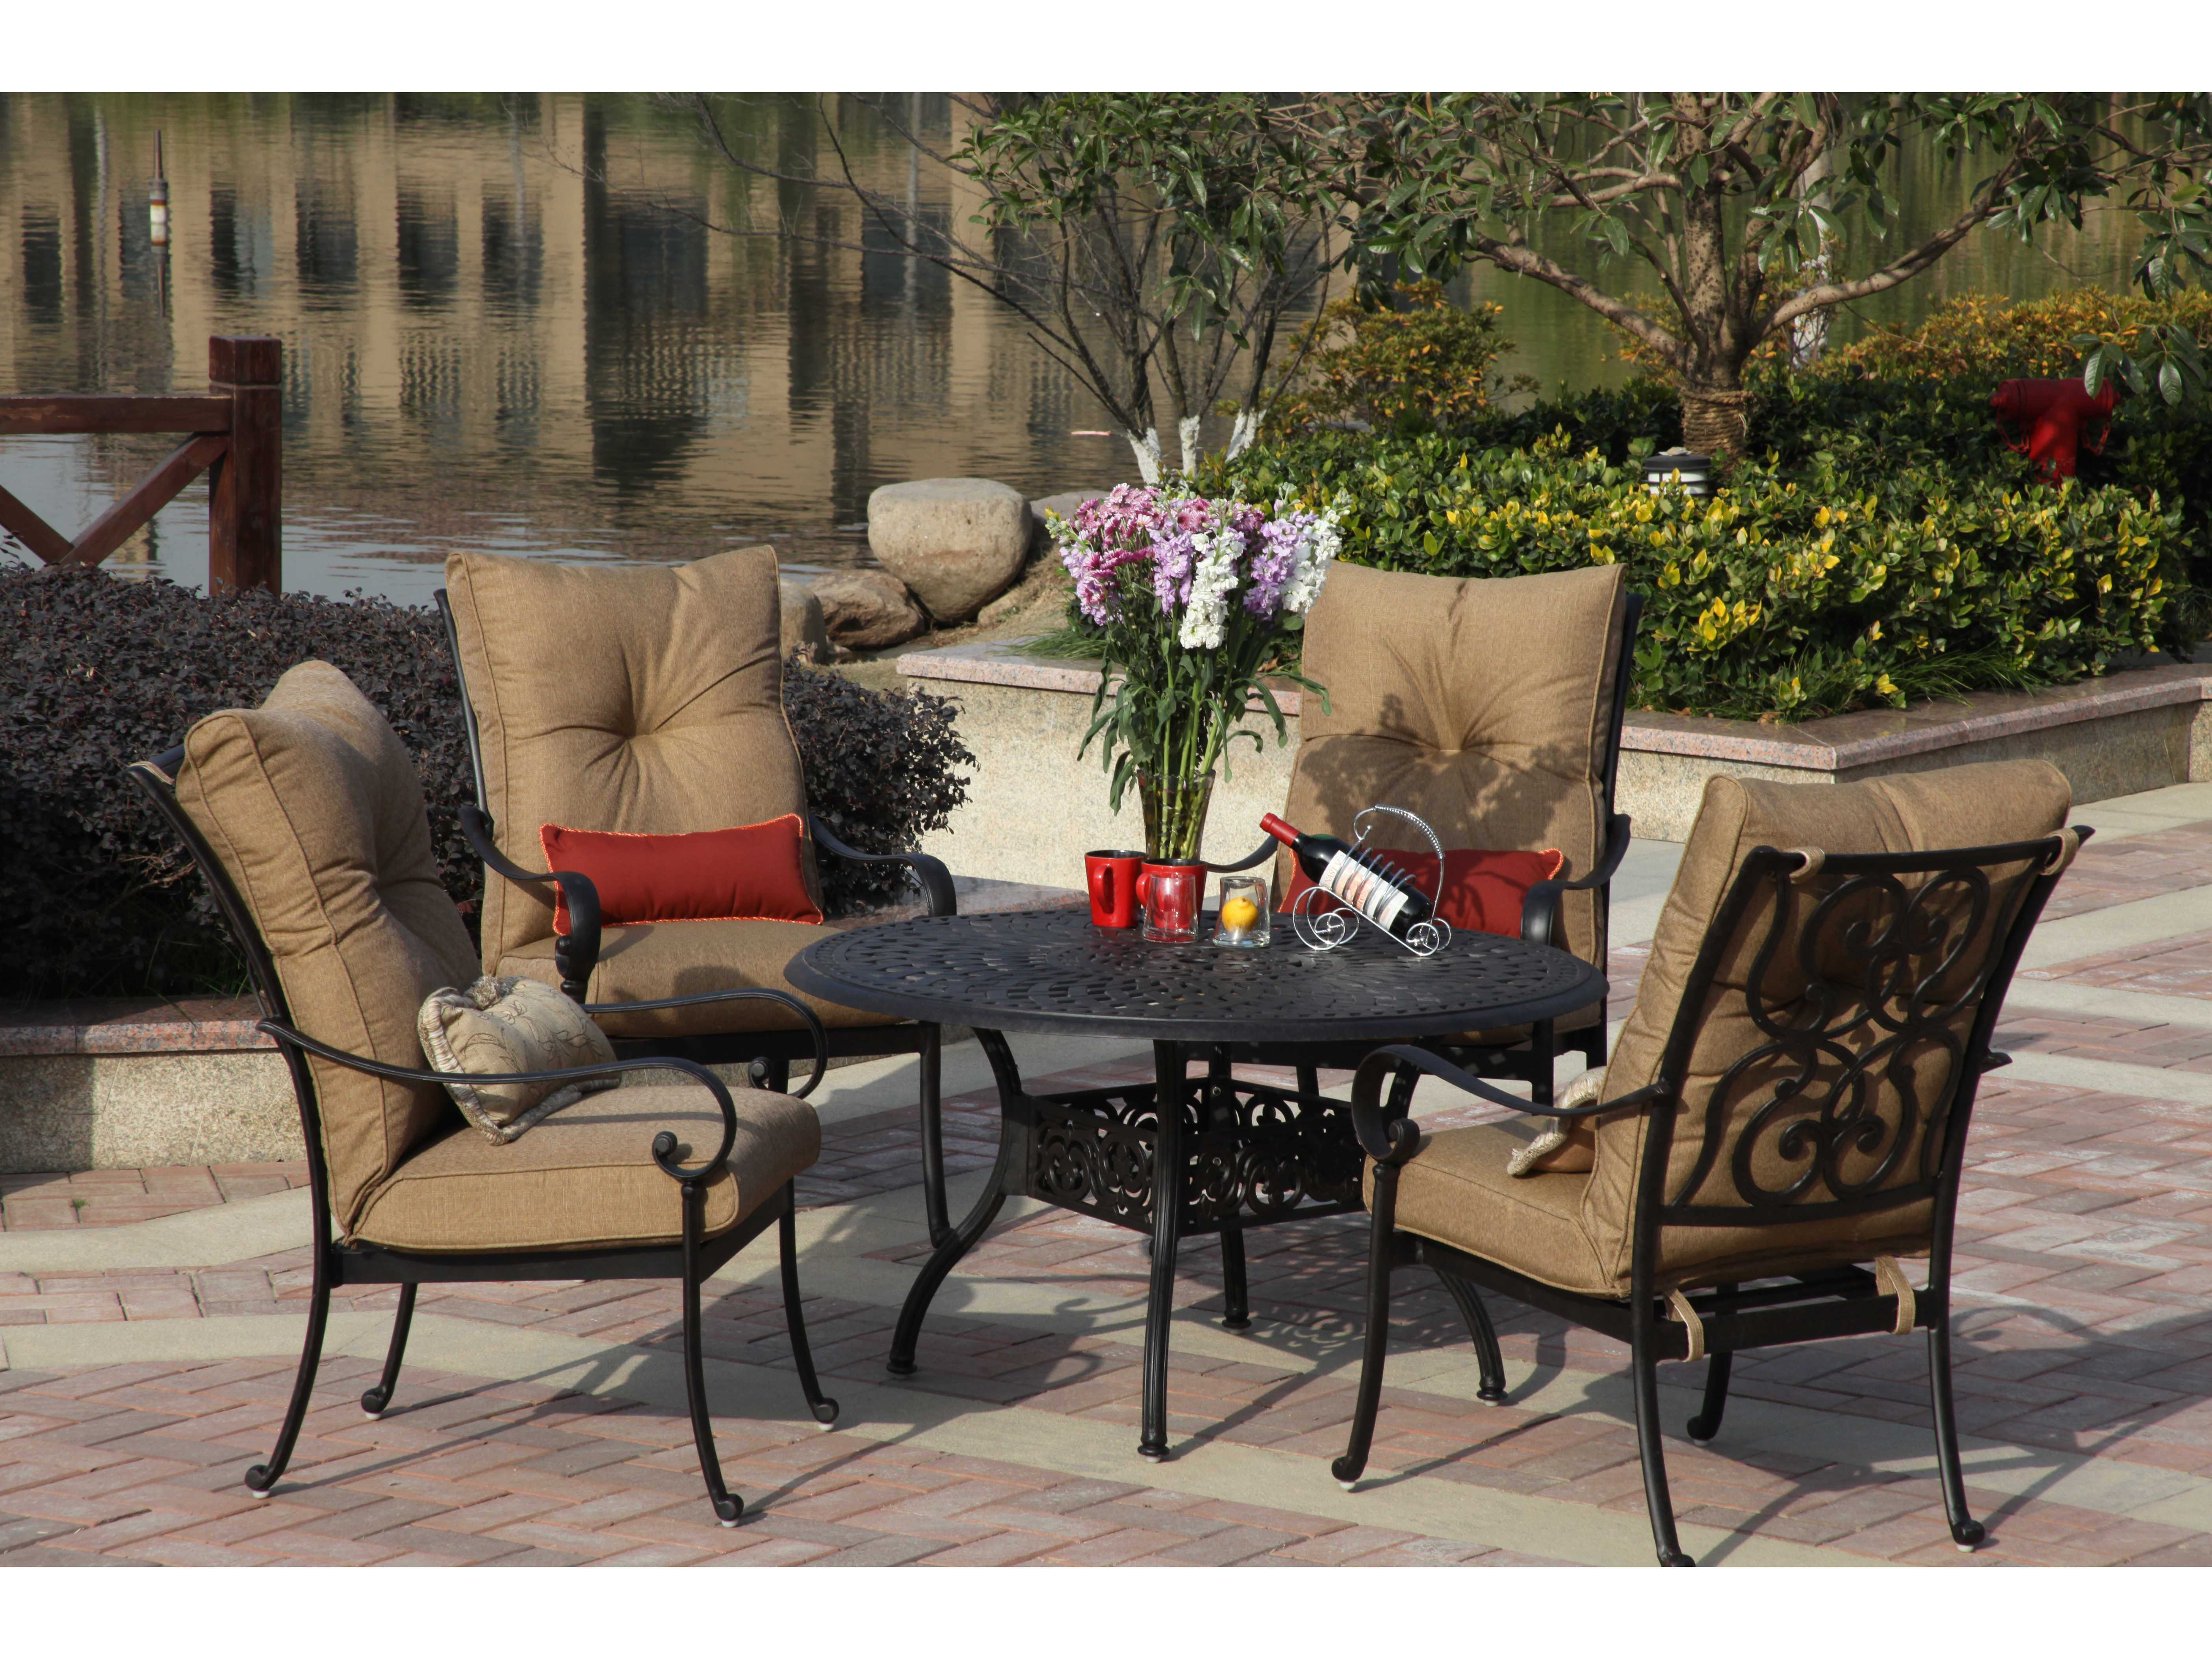 Exceptional View · Darlee Outdoor Living Series 60 Cast Aluminum 48 Round Dining Table